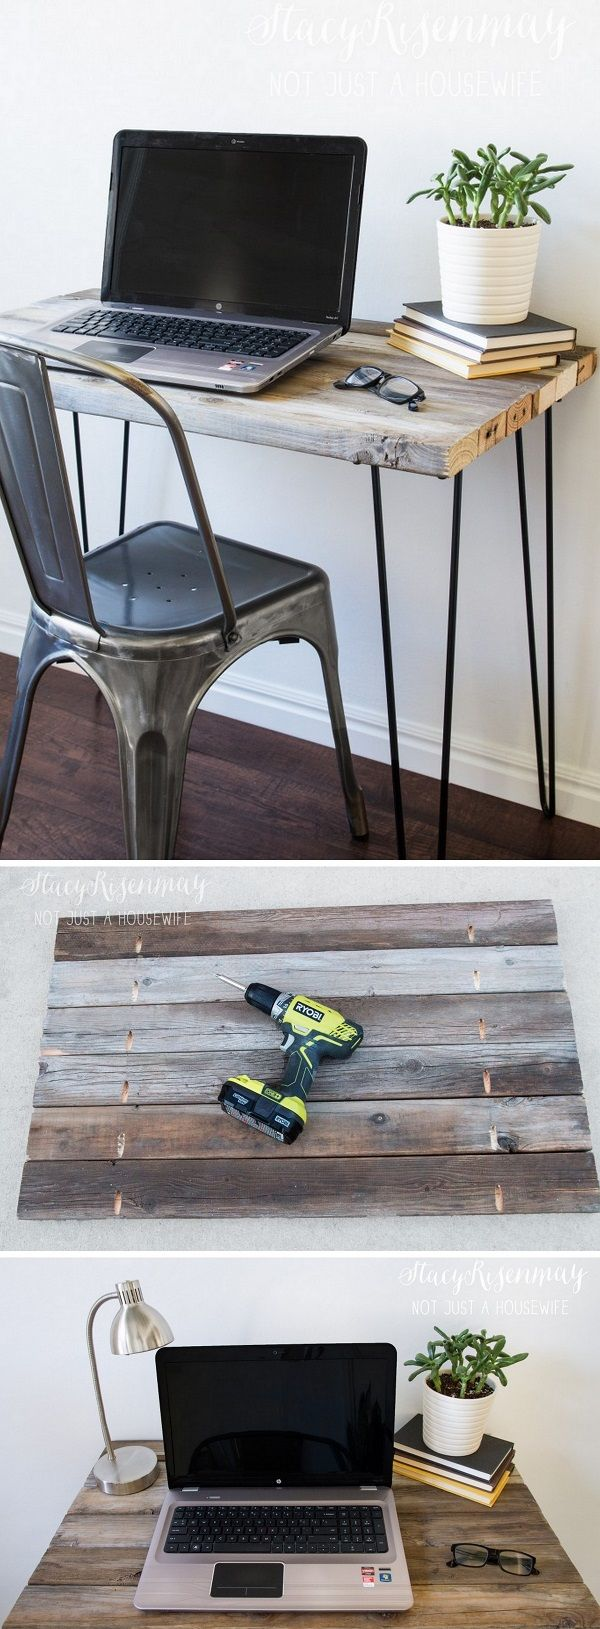 Check out the tutorial how to make a #DIY #reclaimed wood desk with hairpin legs #homedecor #woodworking @istandarddesign